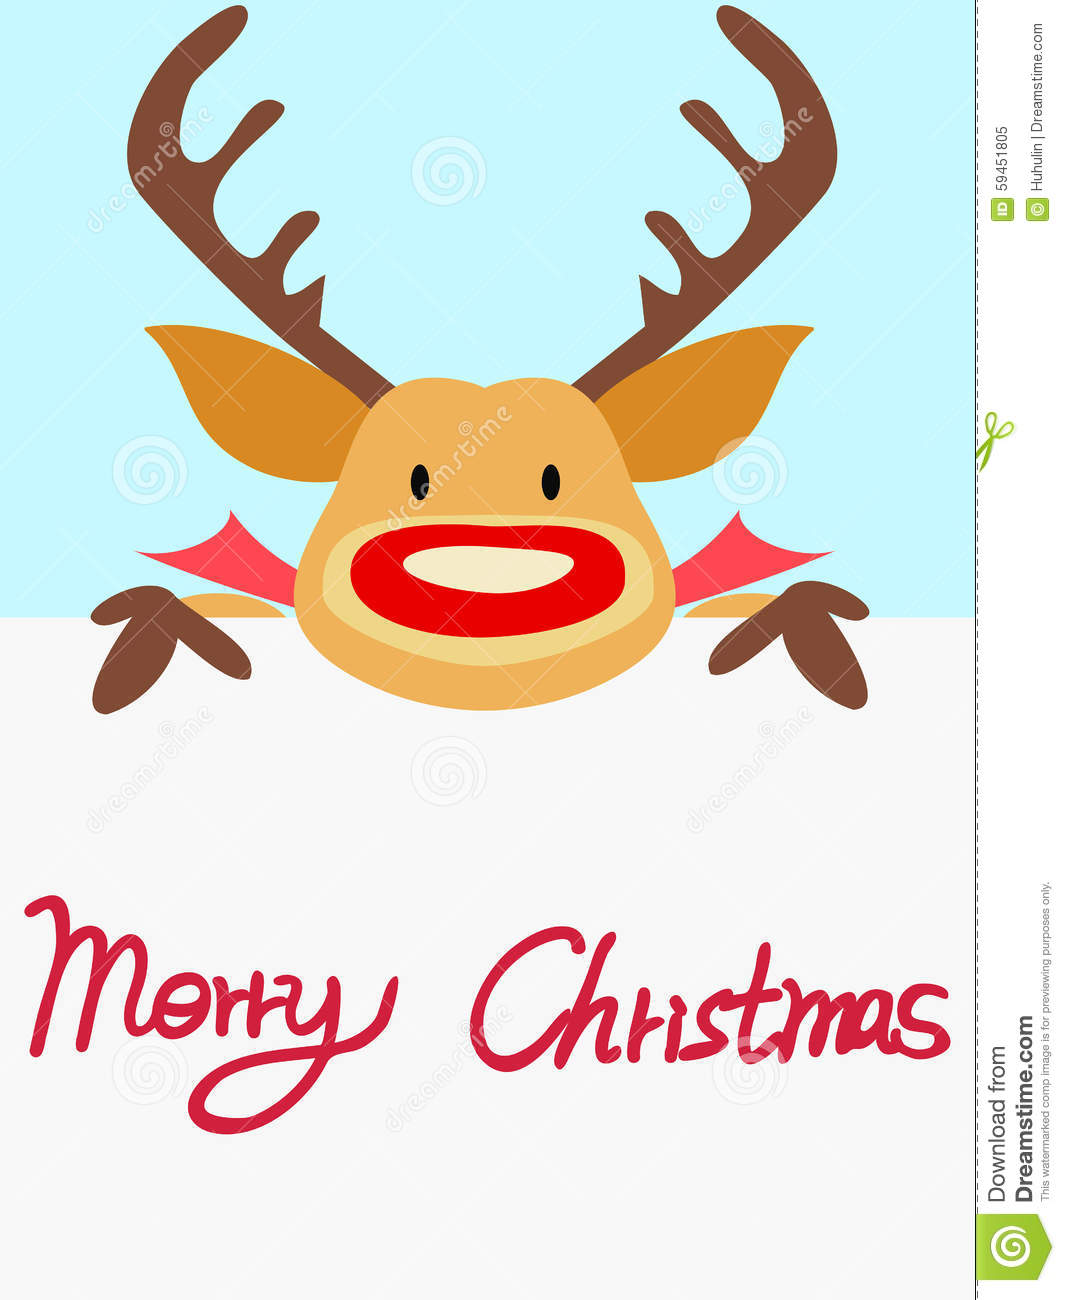 Red Nosed Reindeer Christmas Card With Handwritten Words – Words for Christmas Card